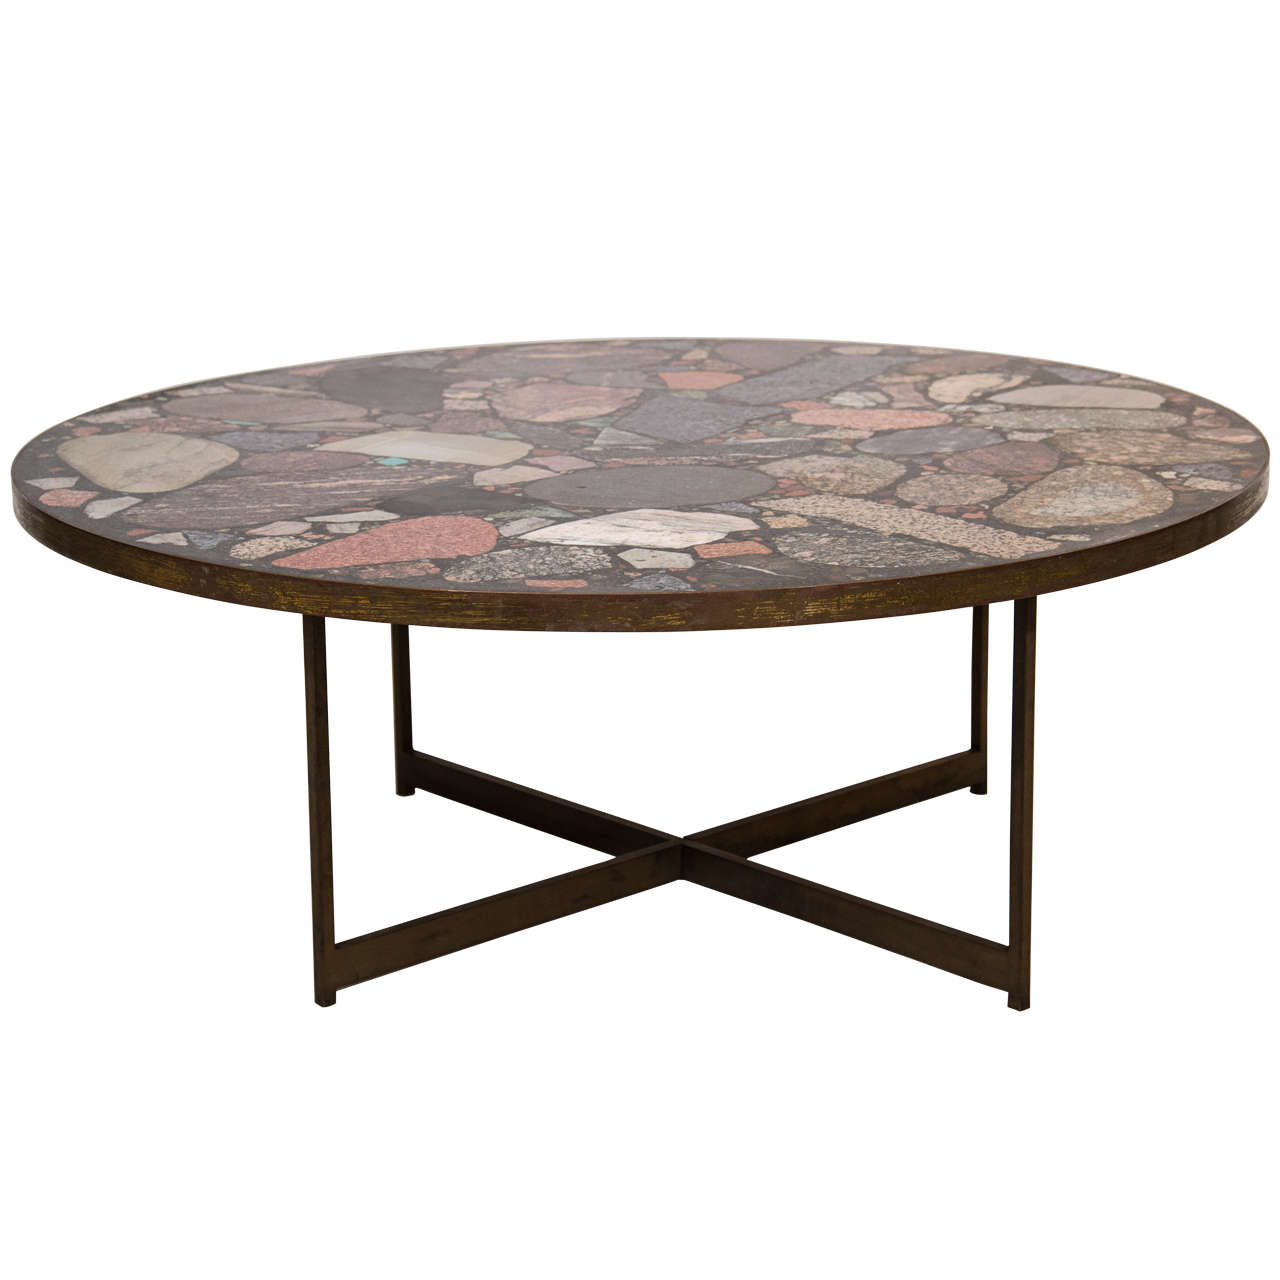 Italian Bronze And Terrazzo Coffee Table At 1stdibs